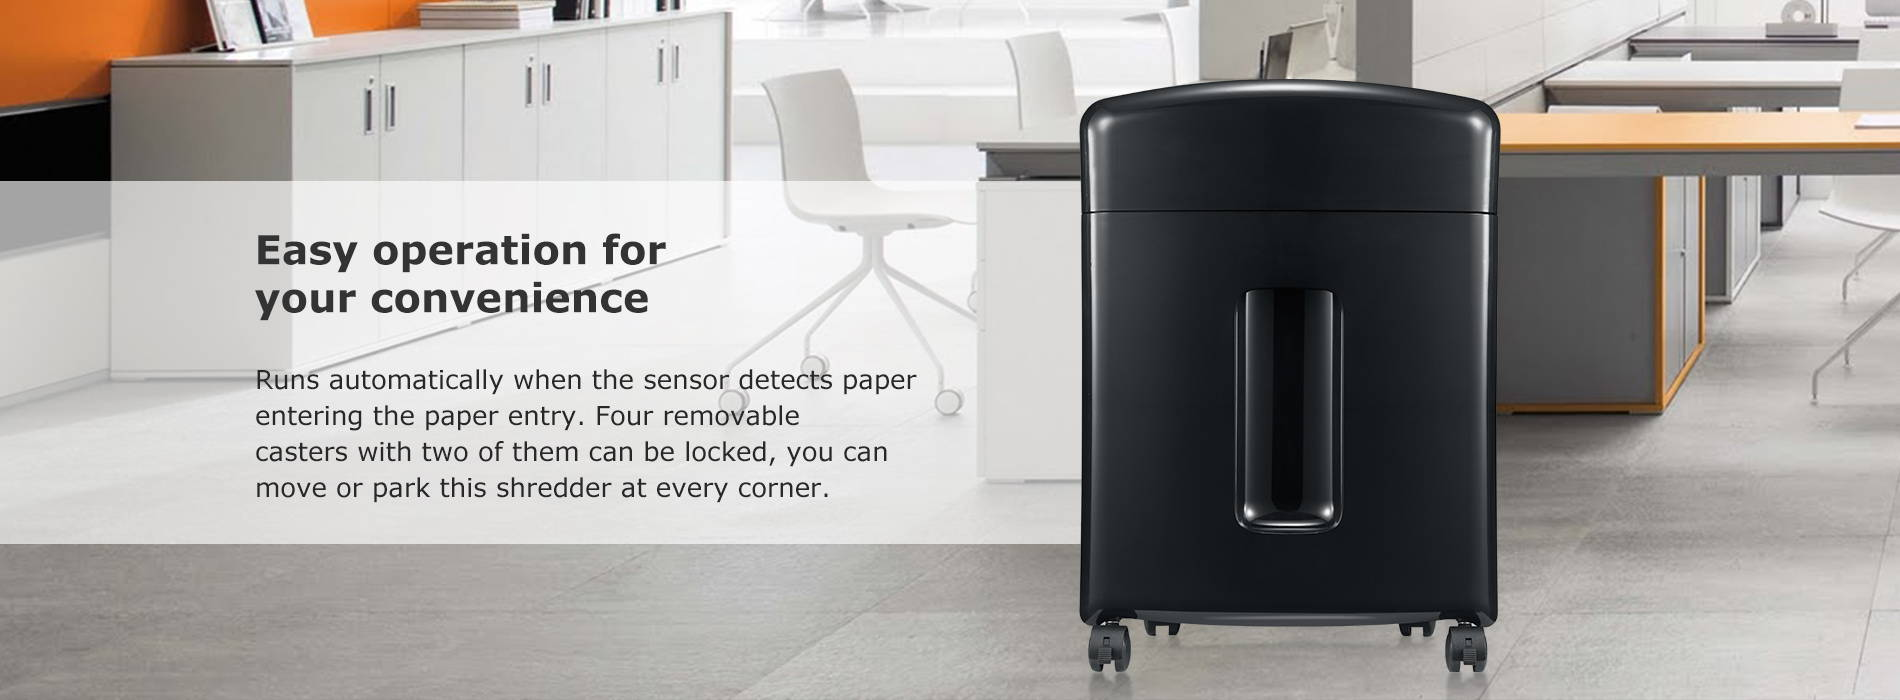 Easy operation for your convenience  Runs automatically when the sensor detects paper entering the paper entry. Four removable casters with two of them can be locked, you can move or park this shredder at every corner.